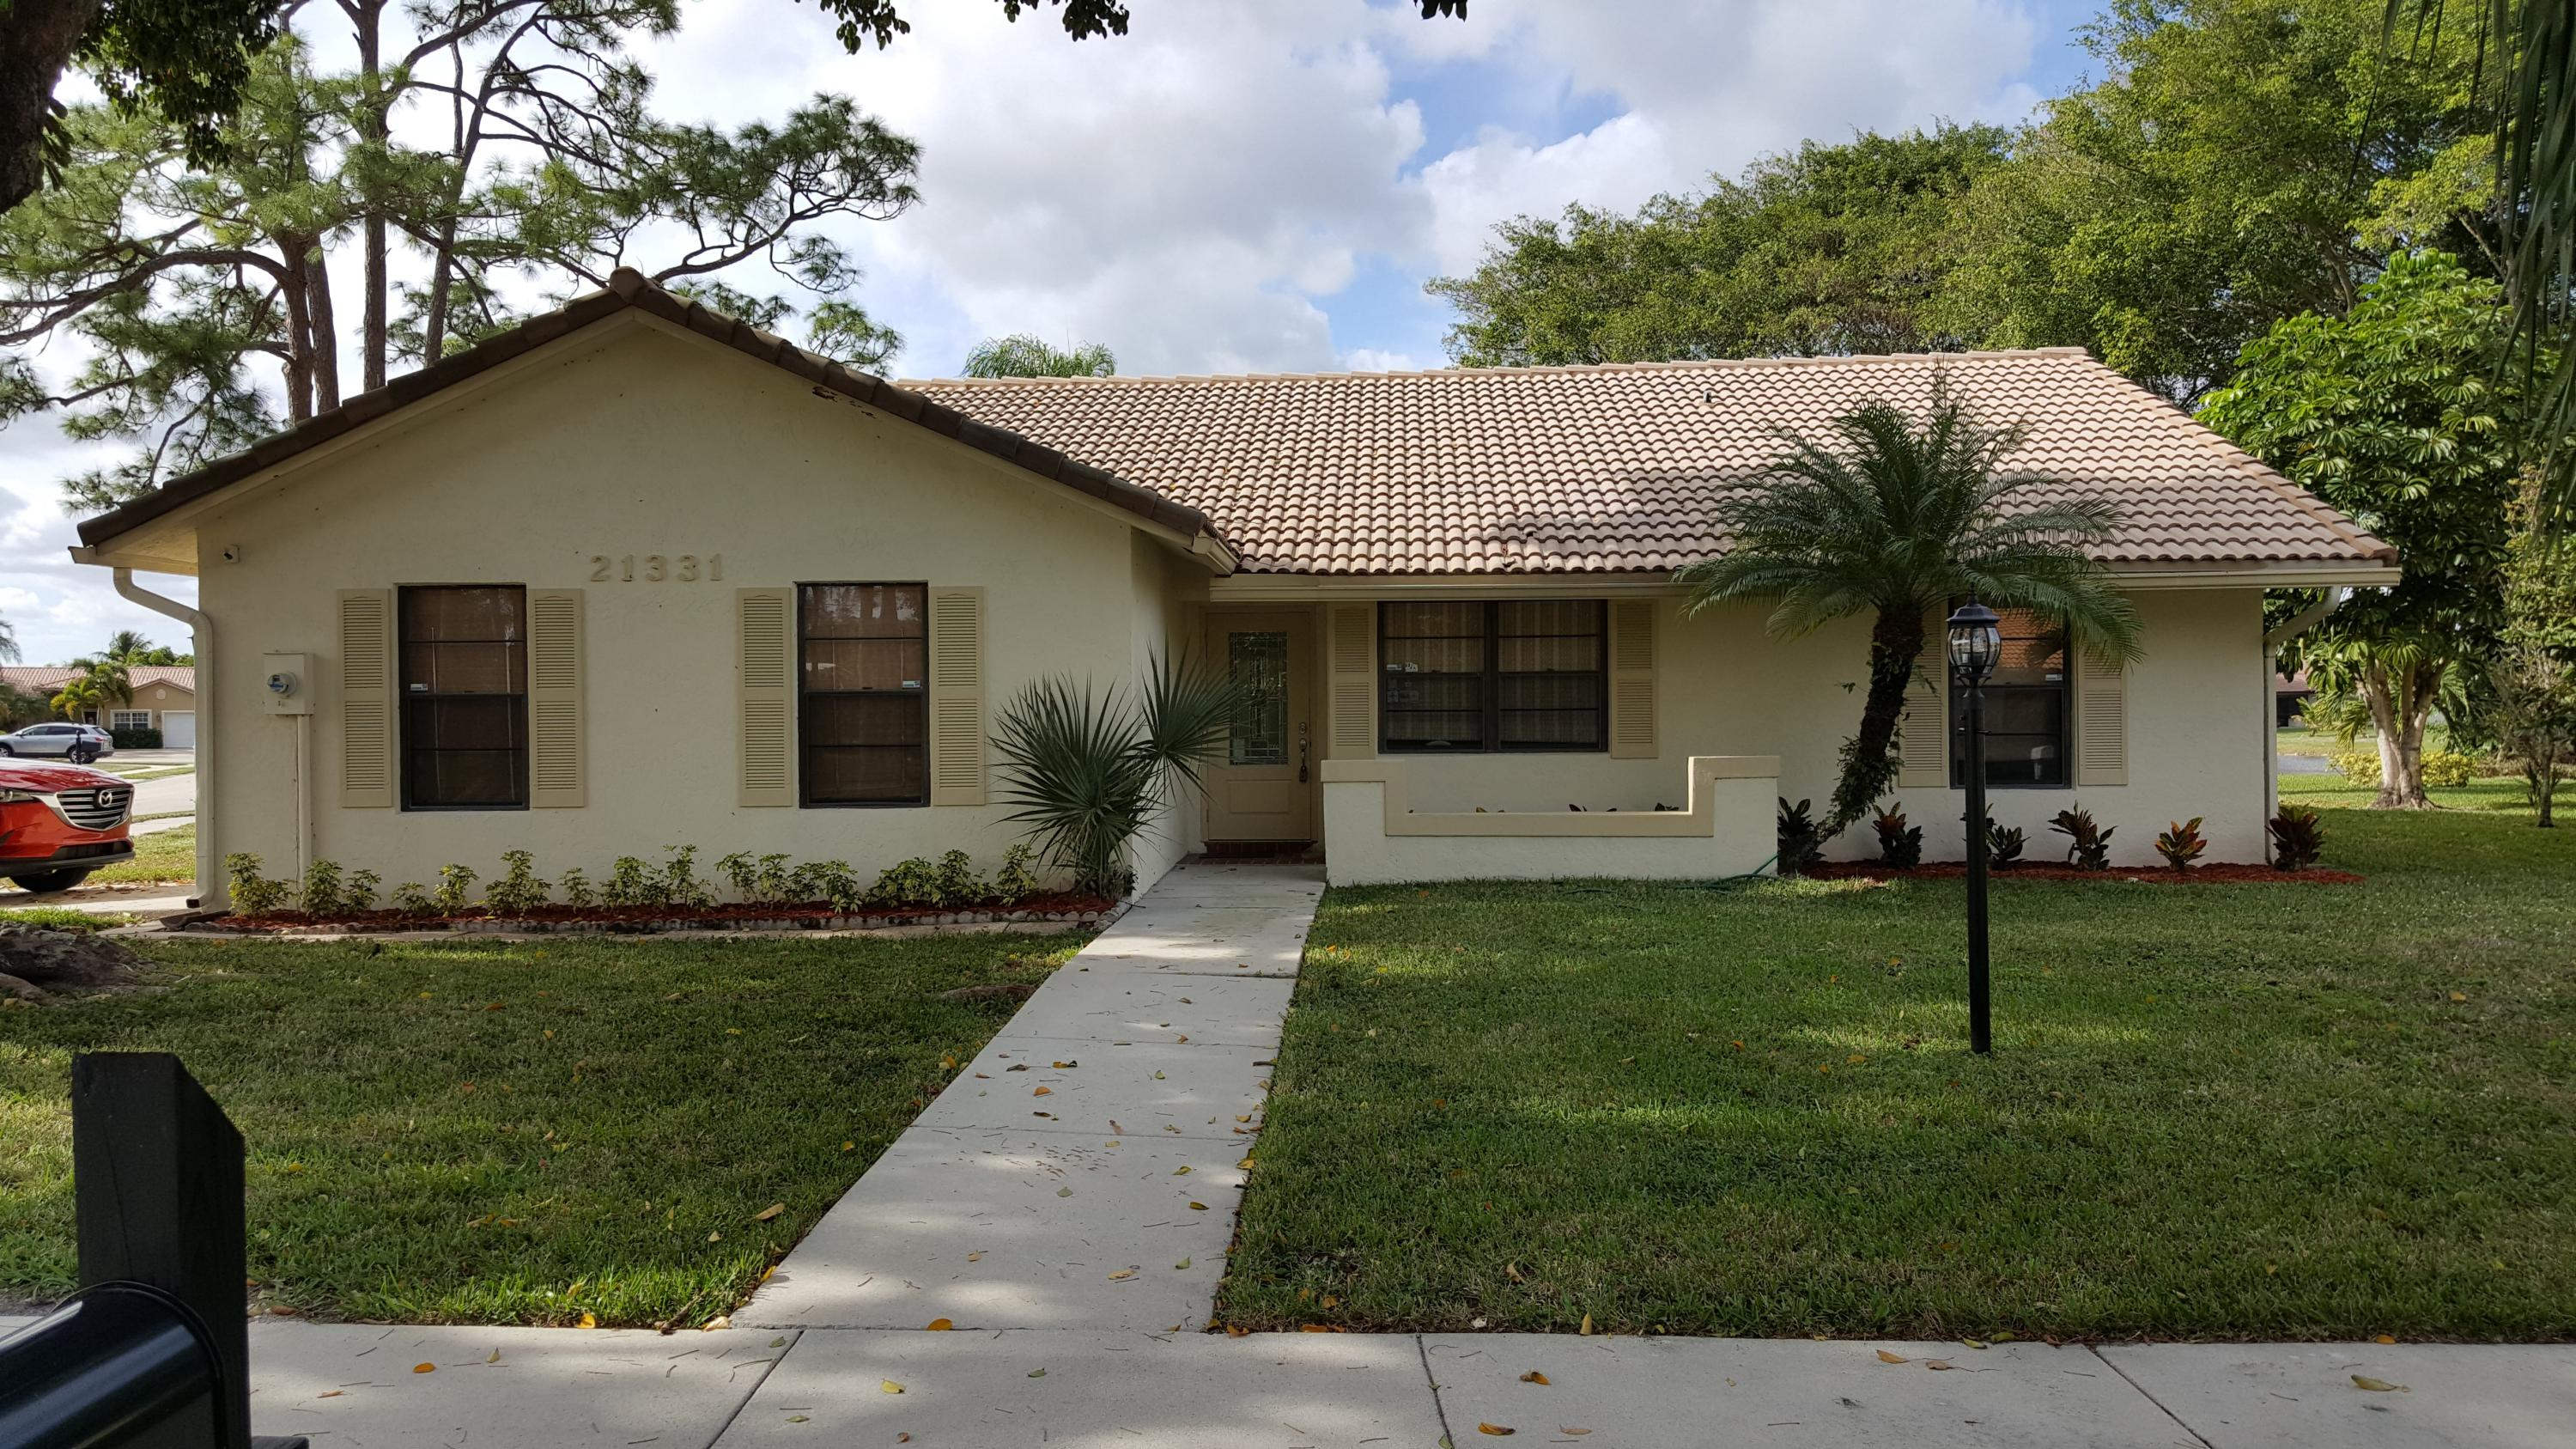 21331 Chinaberry Drive - 3/2 in TIMBERS OF BOCA